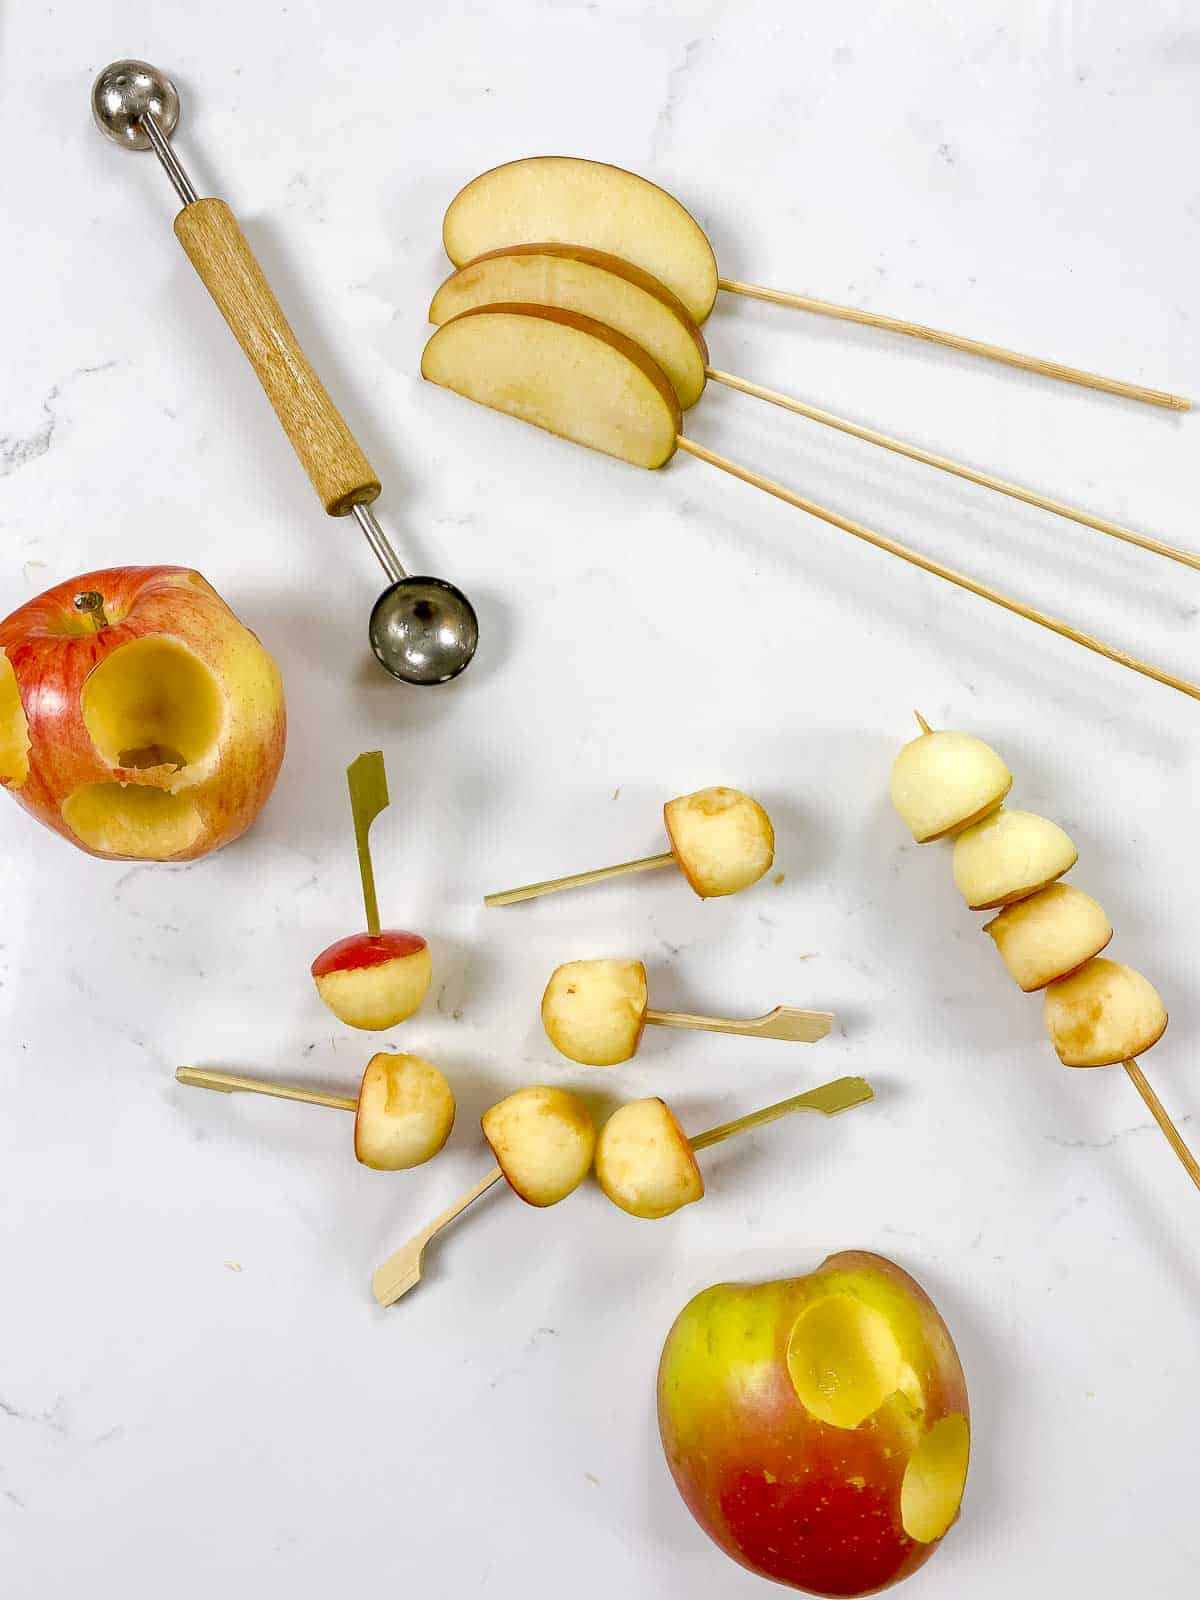 Showing how to melon ball an apple to make mini caramel apple skewers.